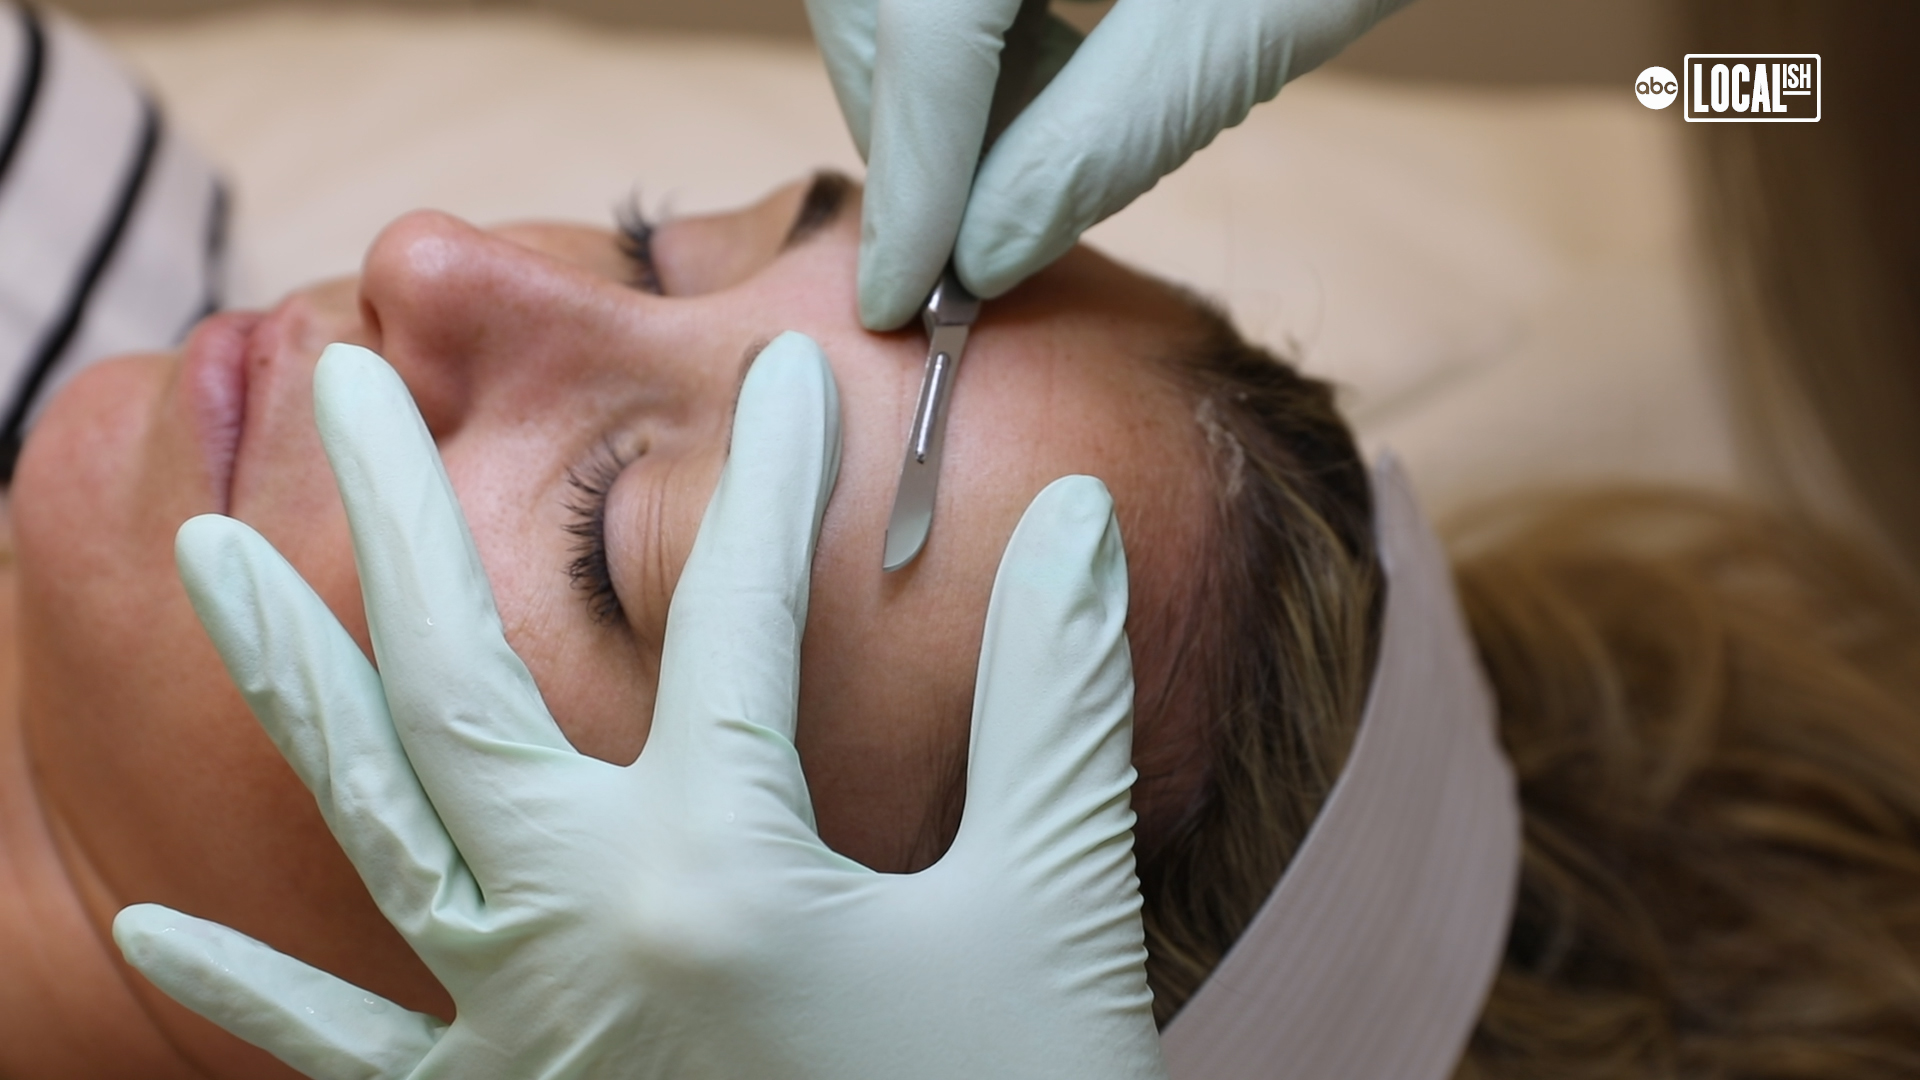 New facelift procedure shaves years off with no downtime